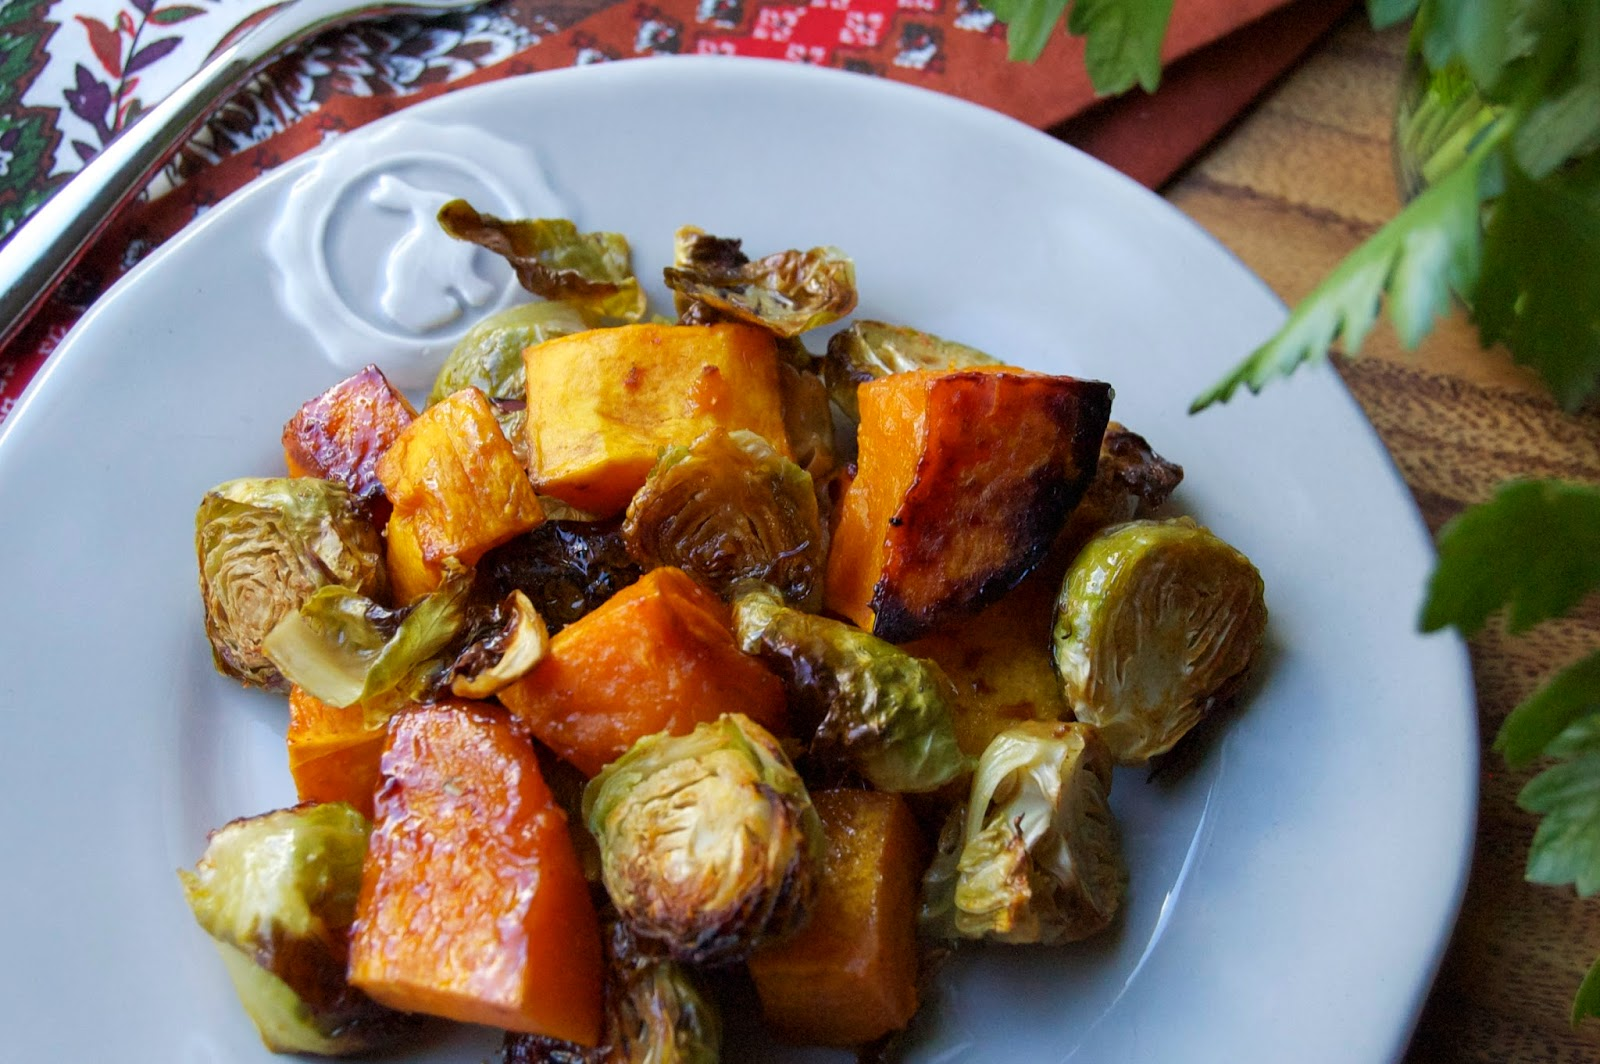 Maple Chili Butternut Squash & Brussels Sprouts | www.kettlercuisine.com